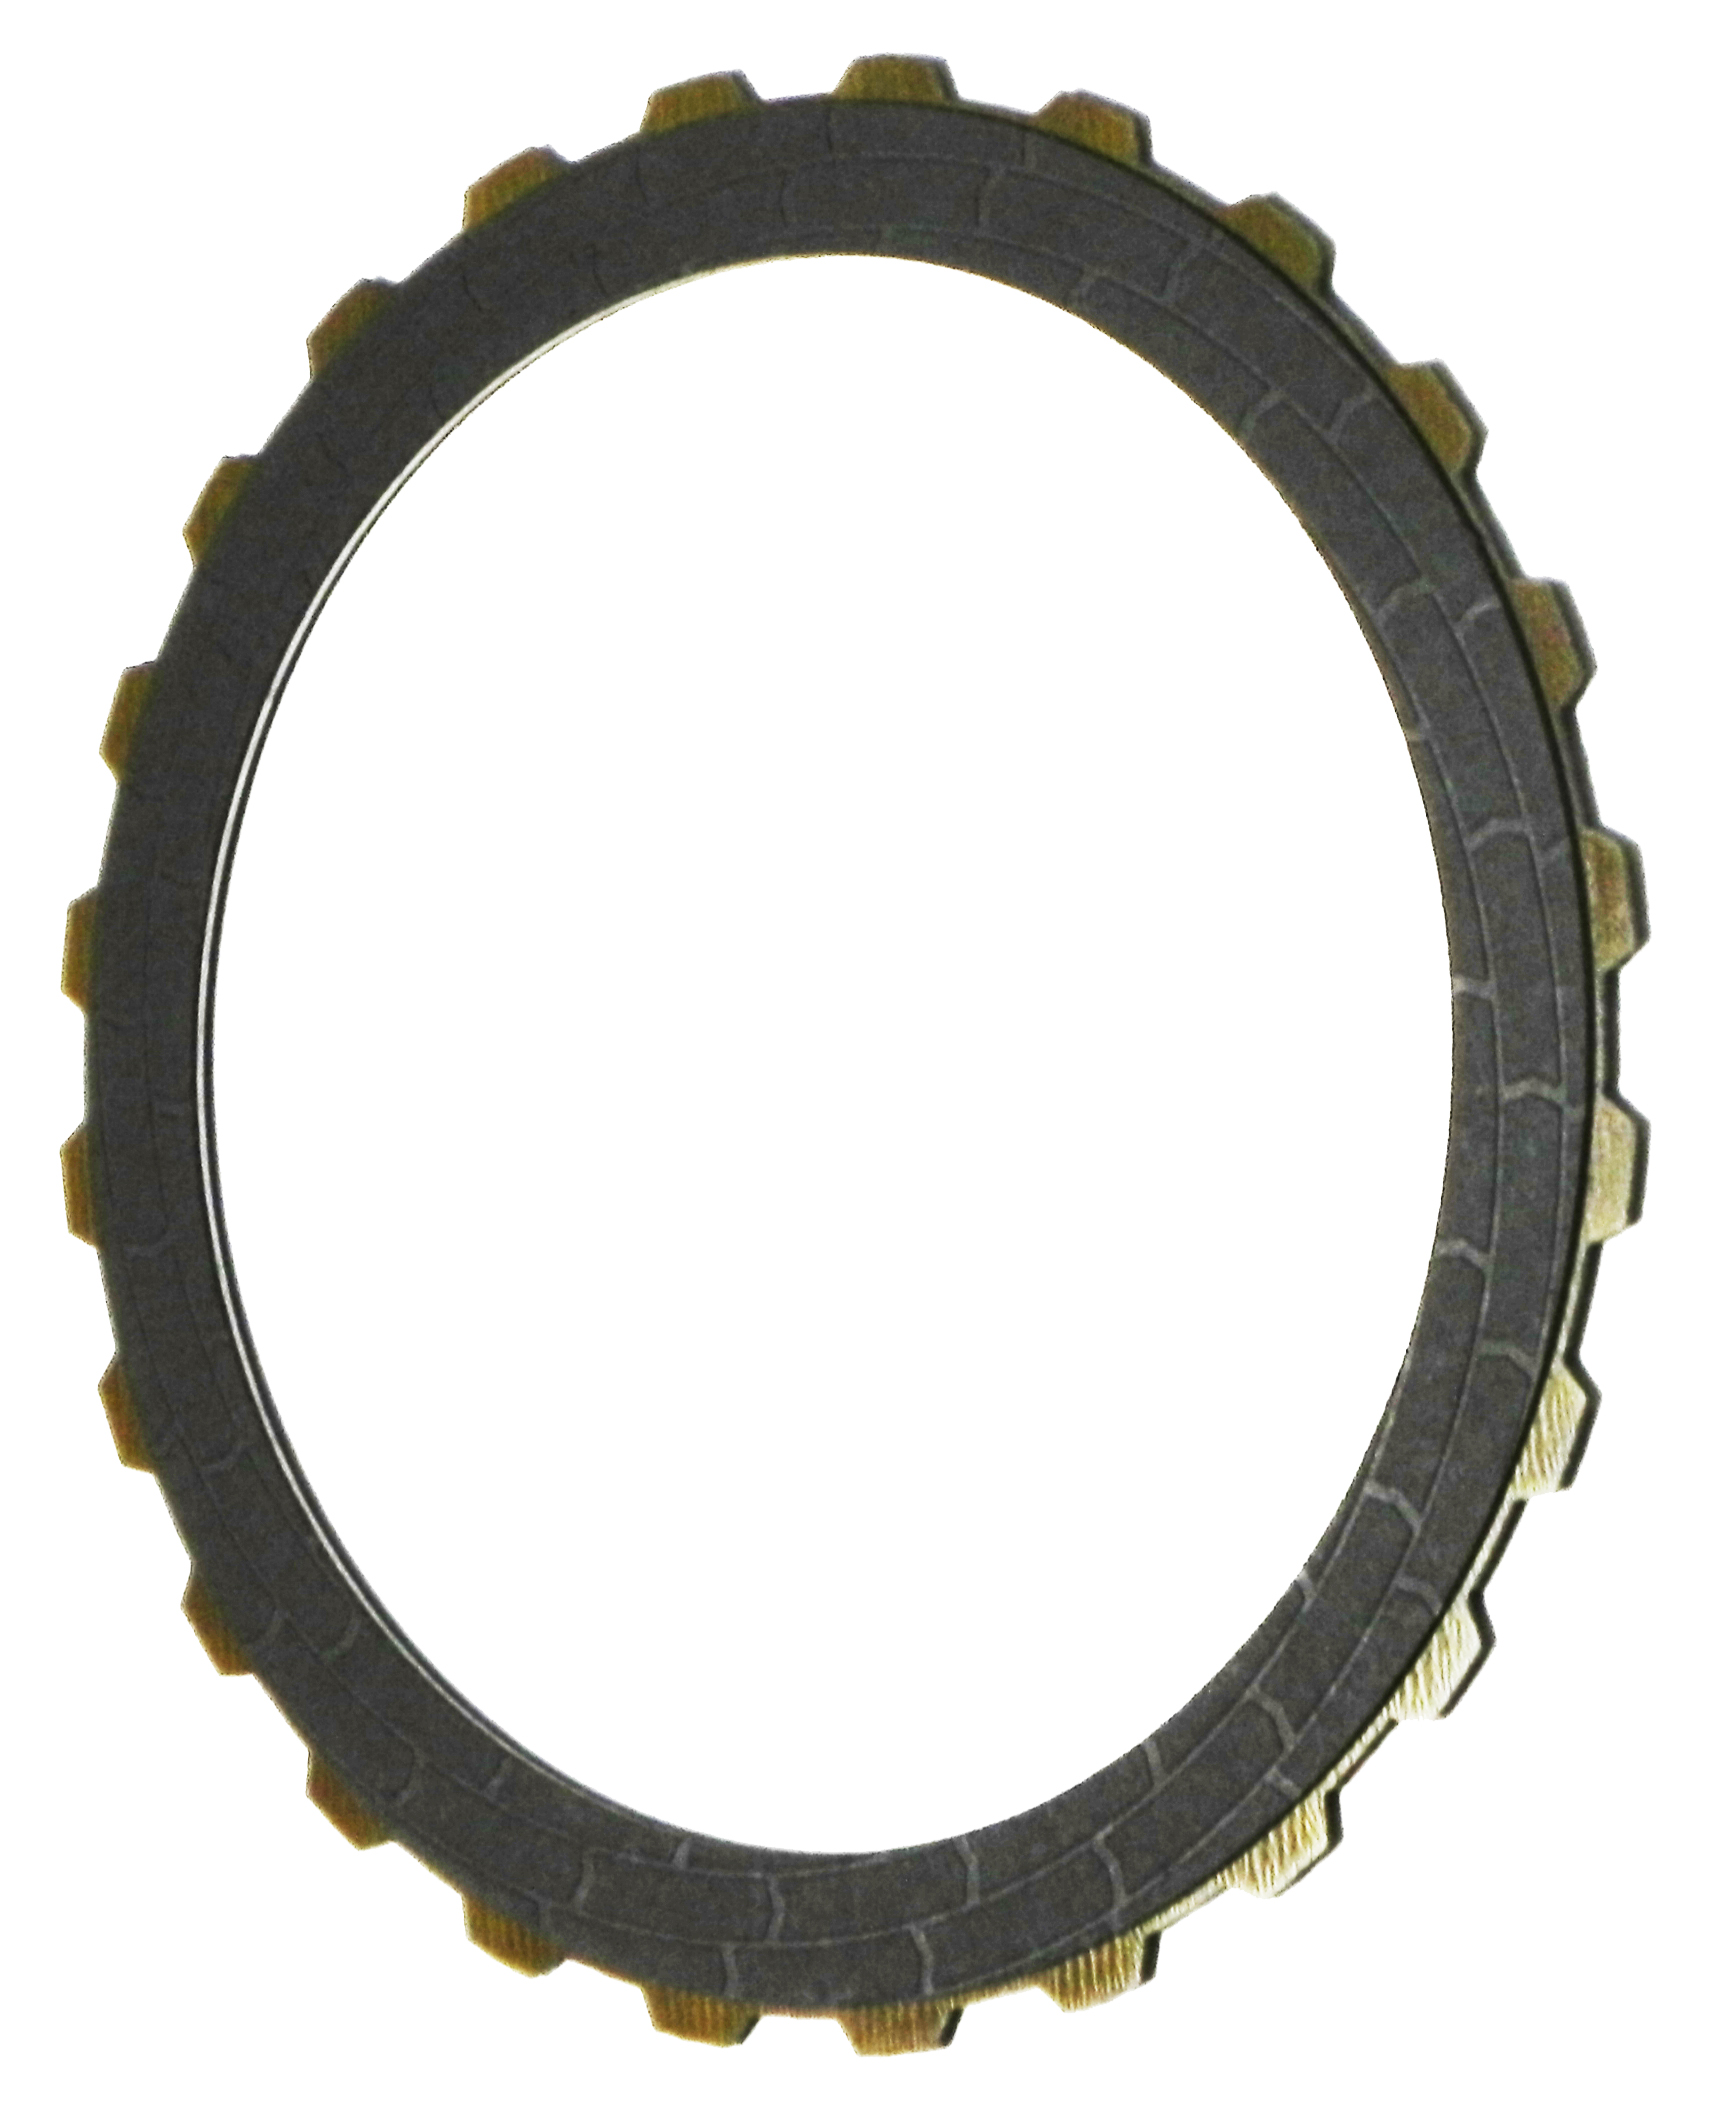 845RE (HT) Hybrid Technology Friction Clutch Plate